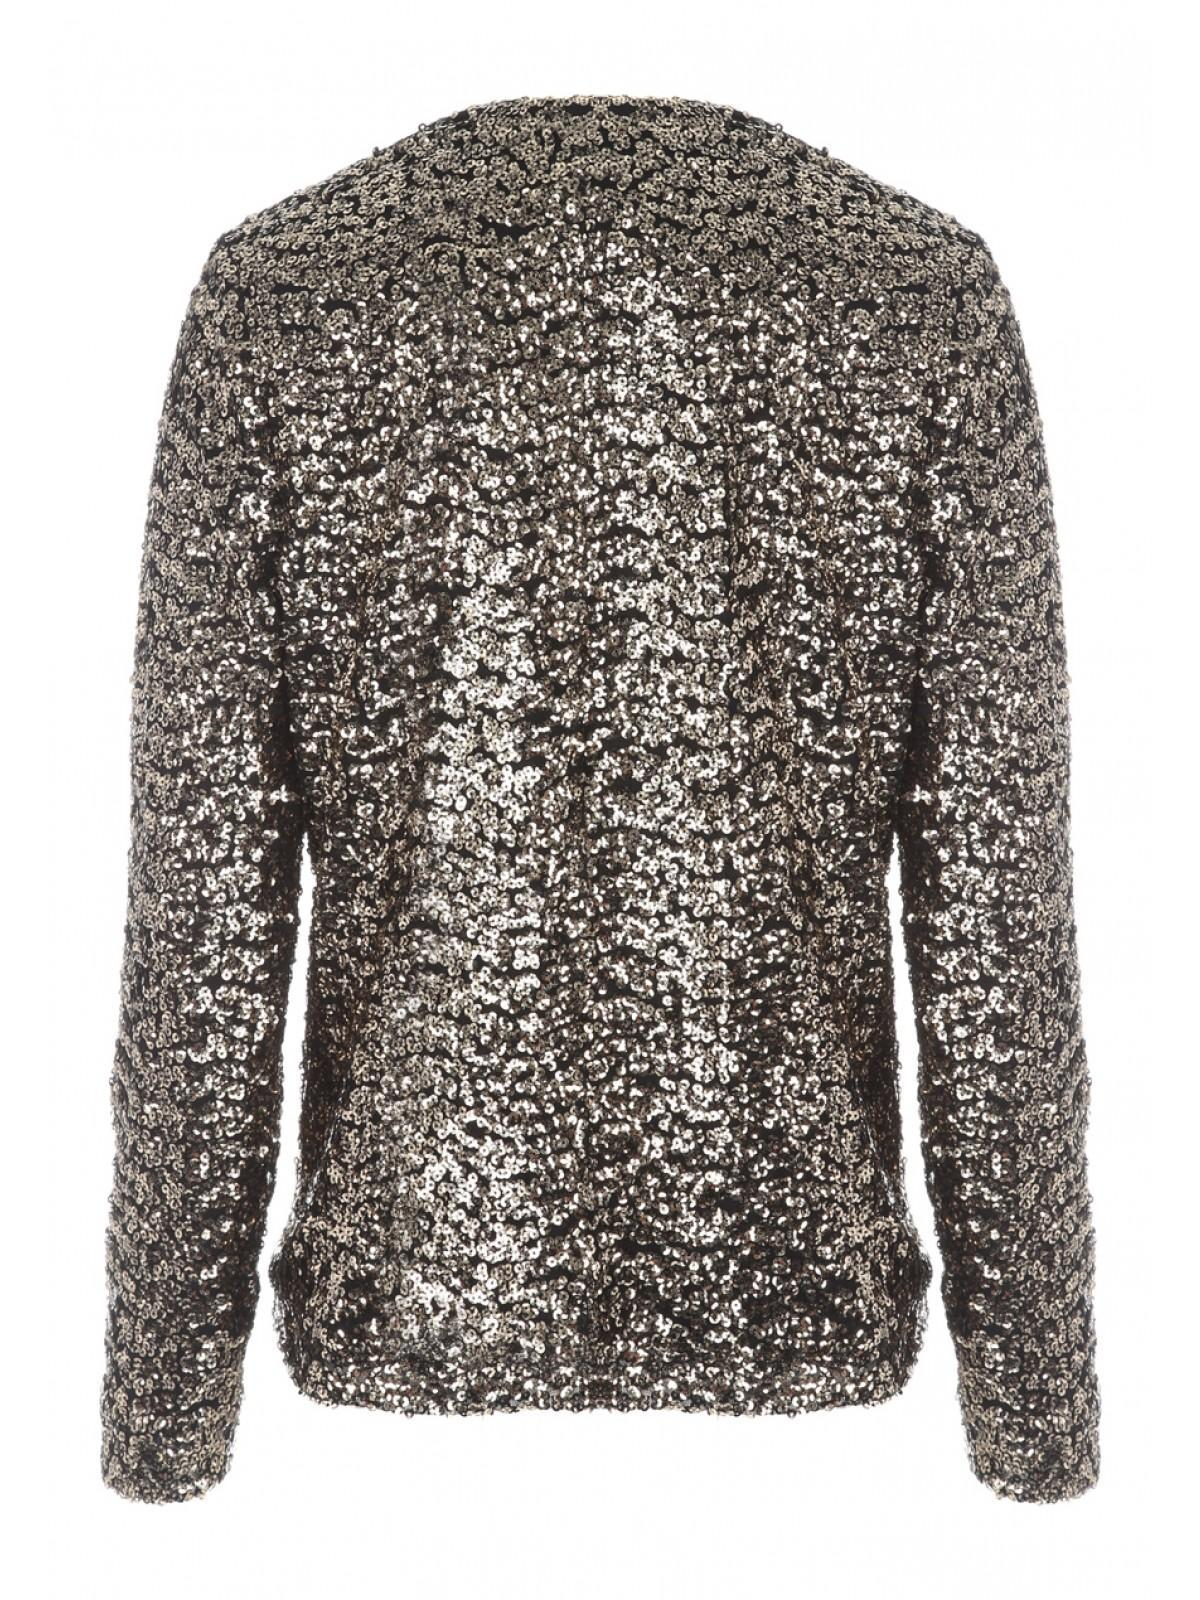 Womens Gold Sequin Waterfall Jacket   Peacocks